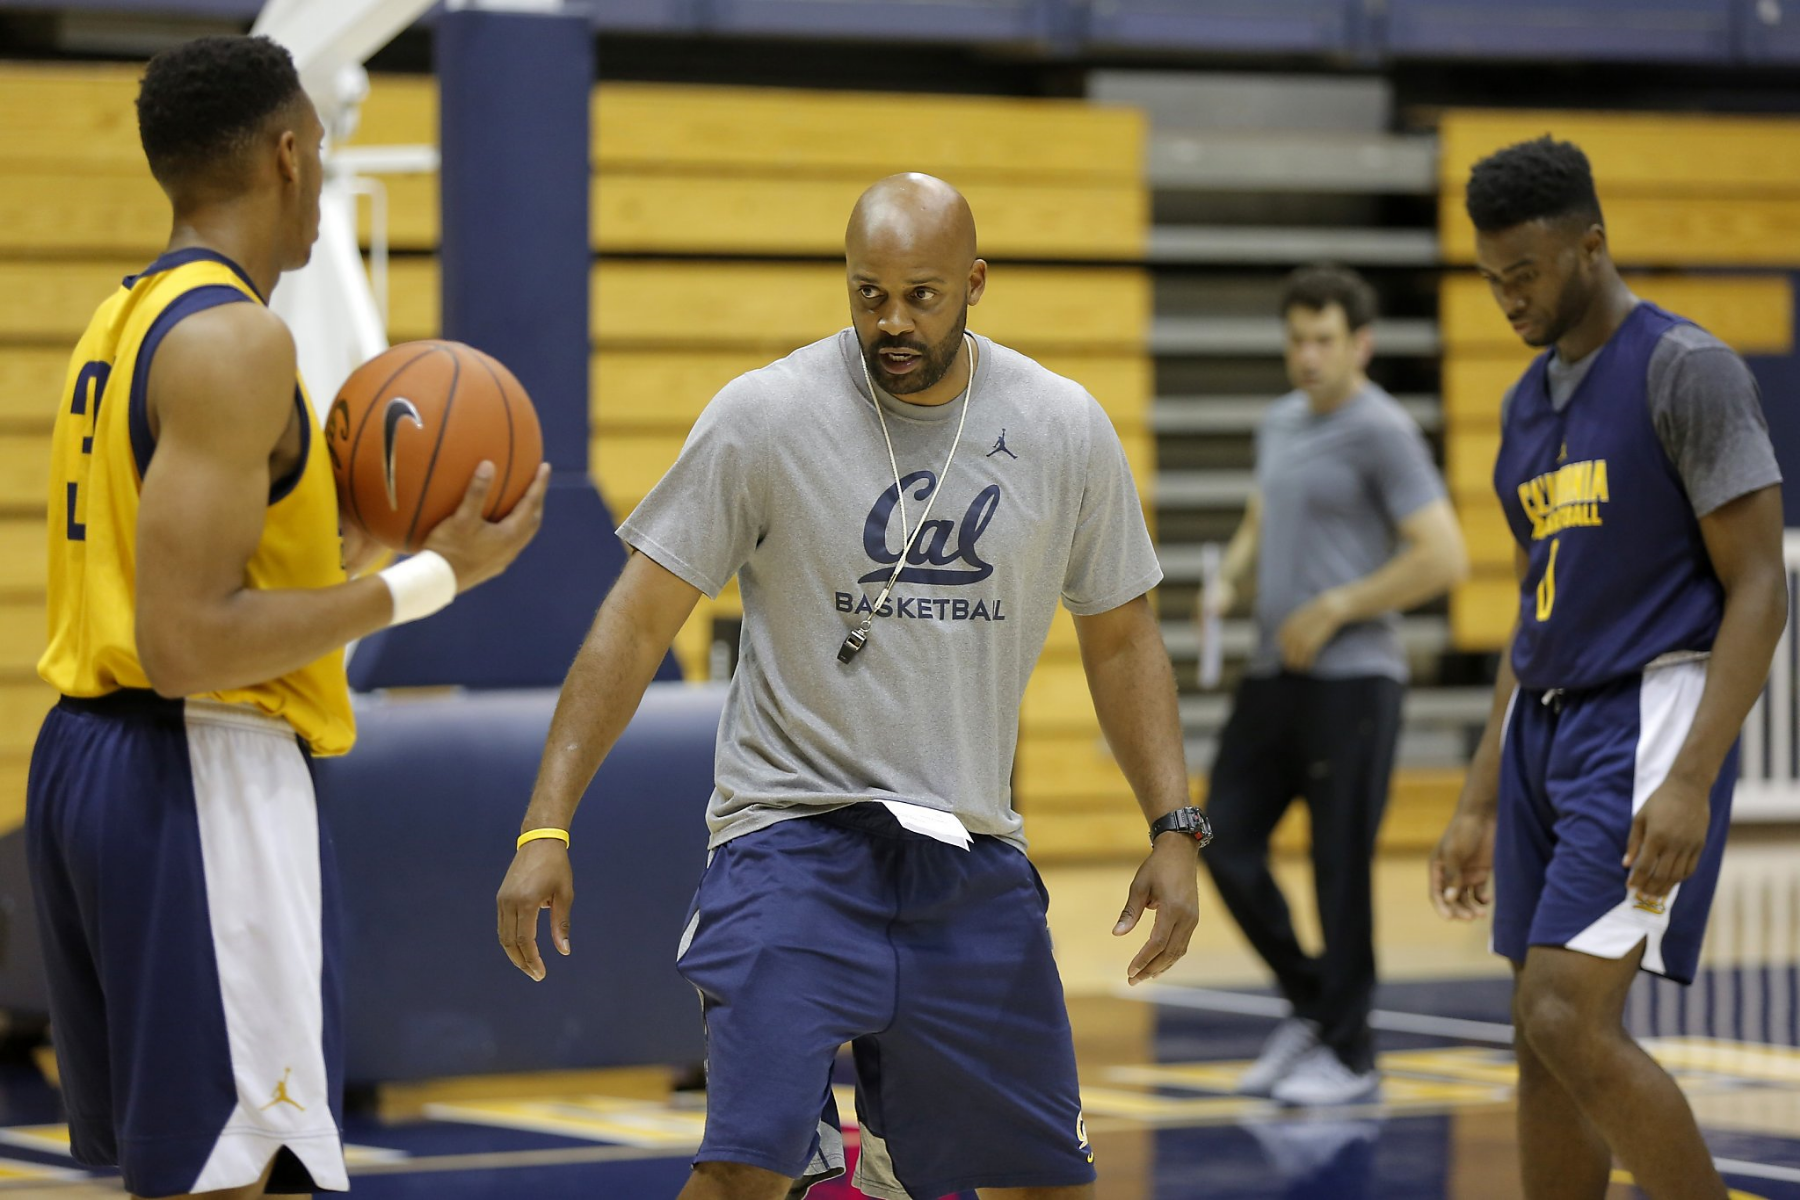 When Cuonzo Martin speaks, people listen. (Photo by John Polzer)